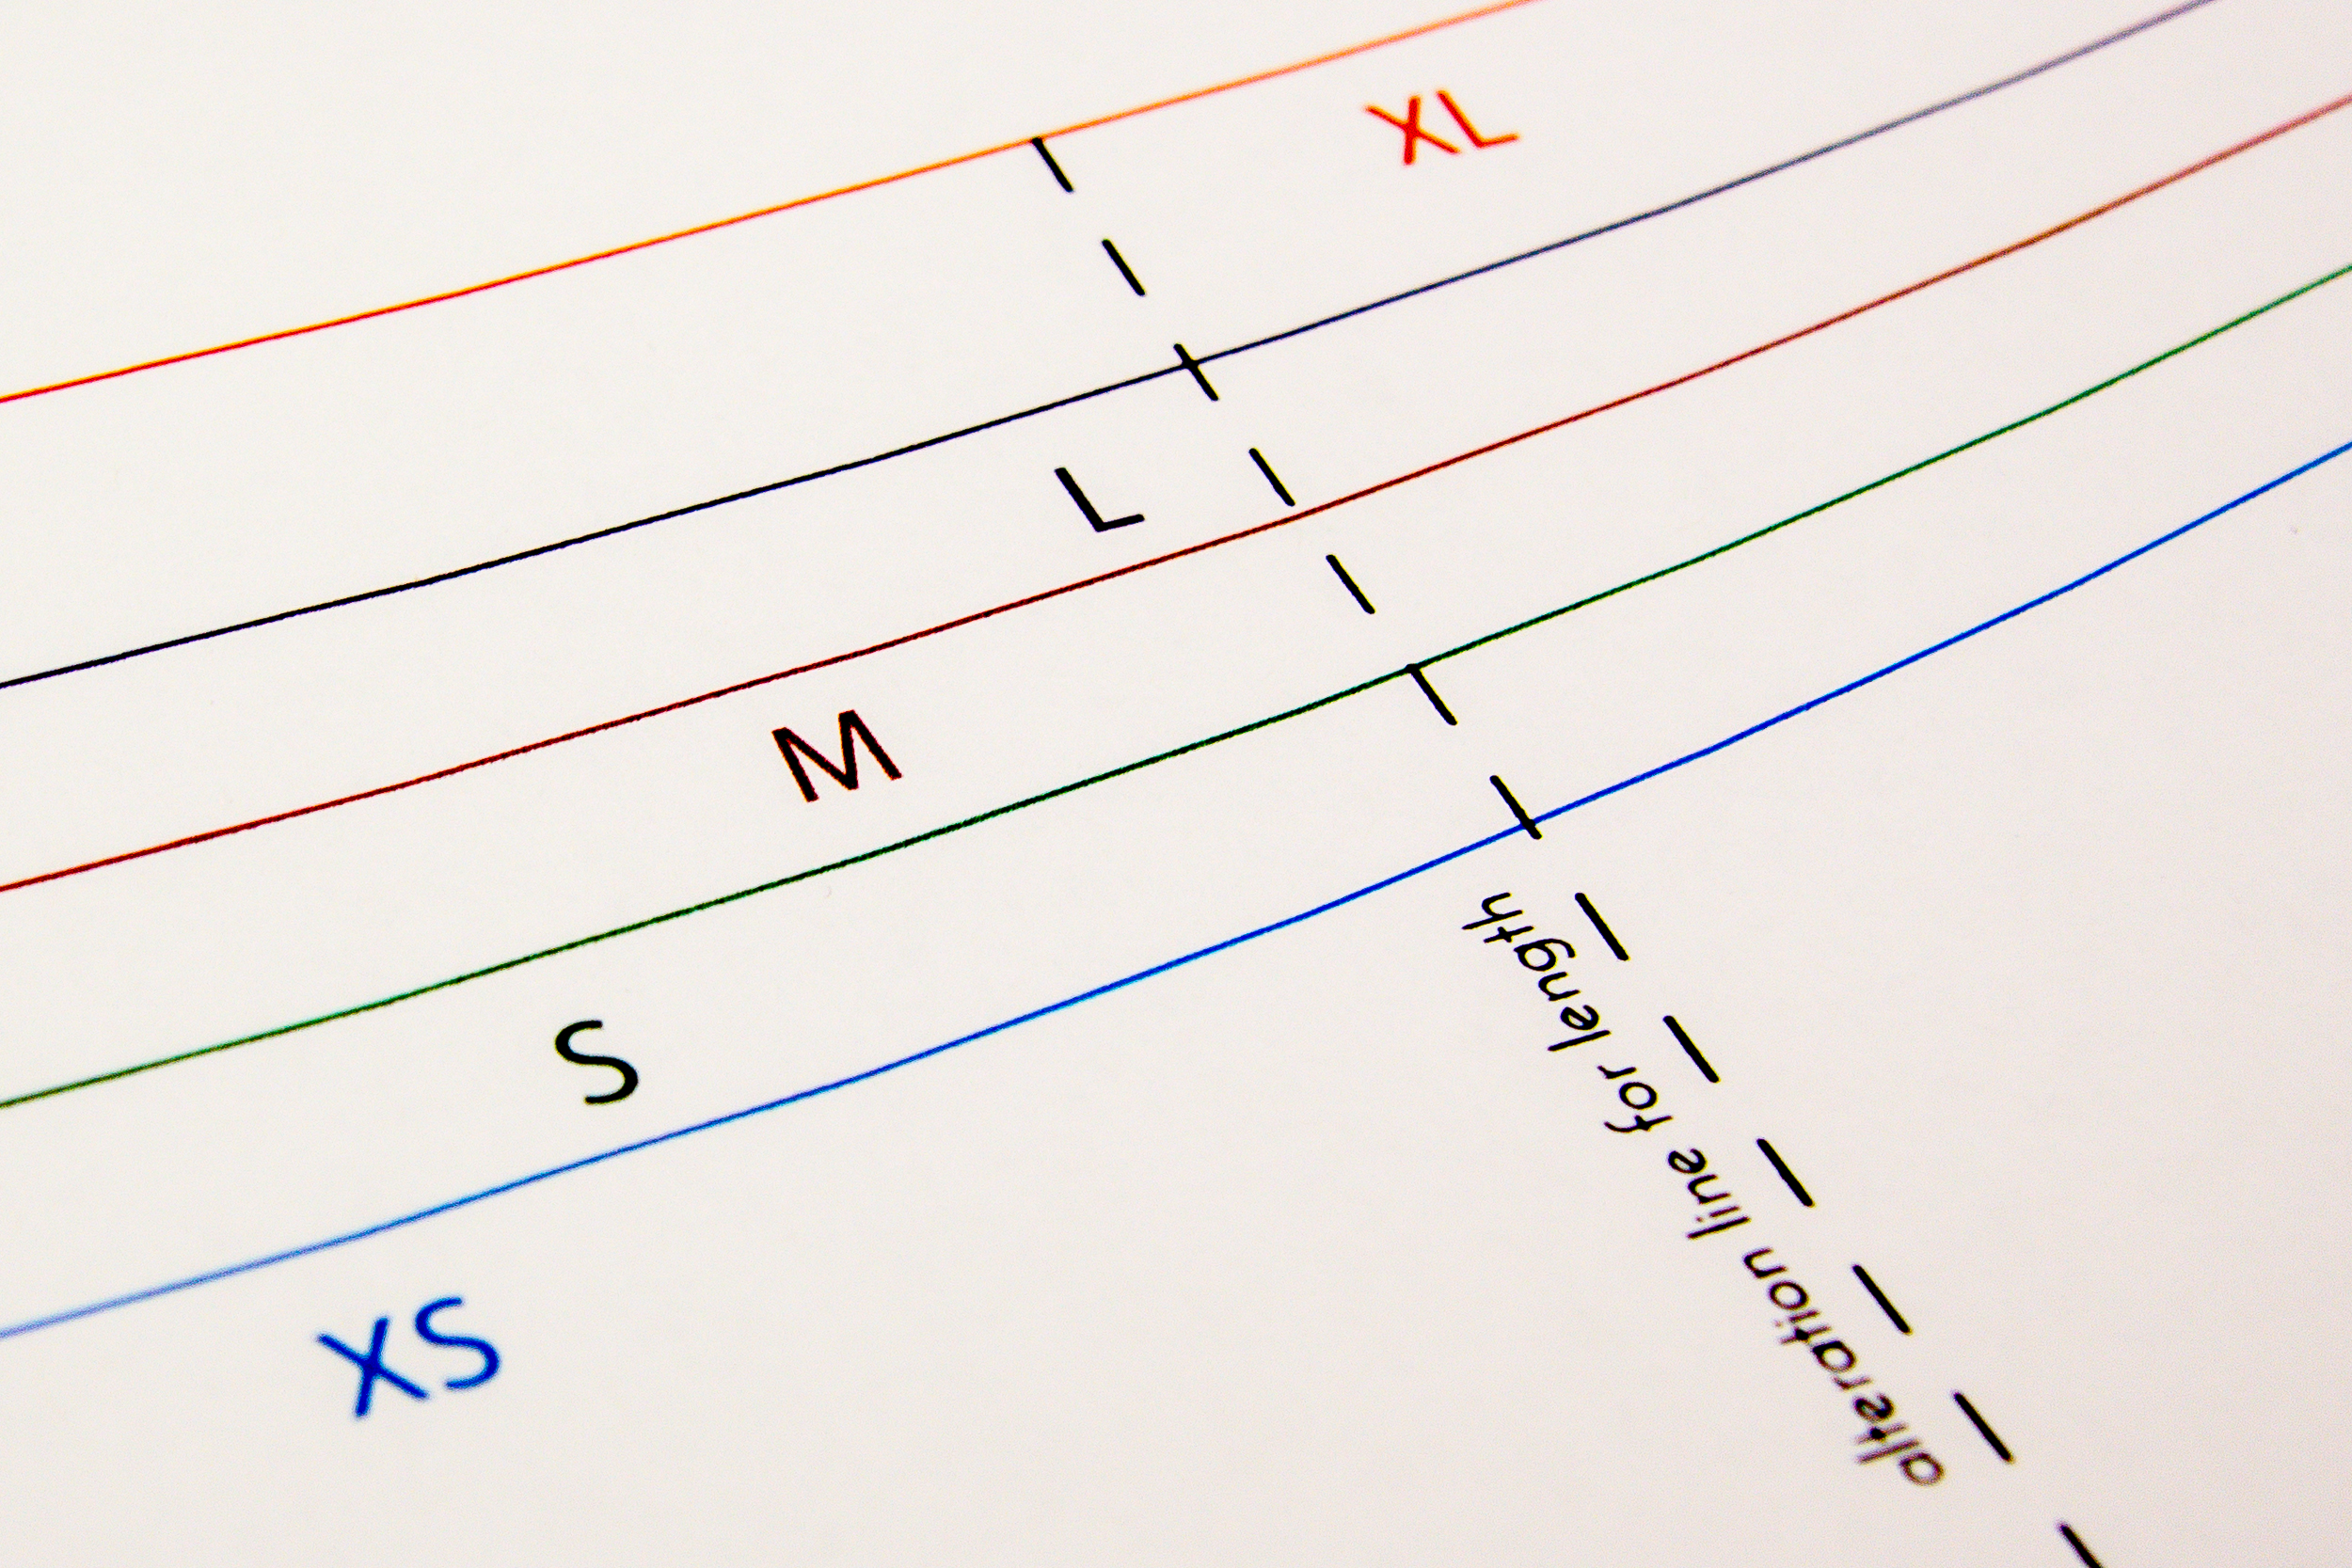 4 patterns on durable paper with color-coded sizing lines.